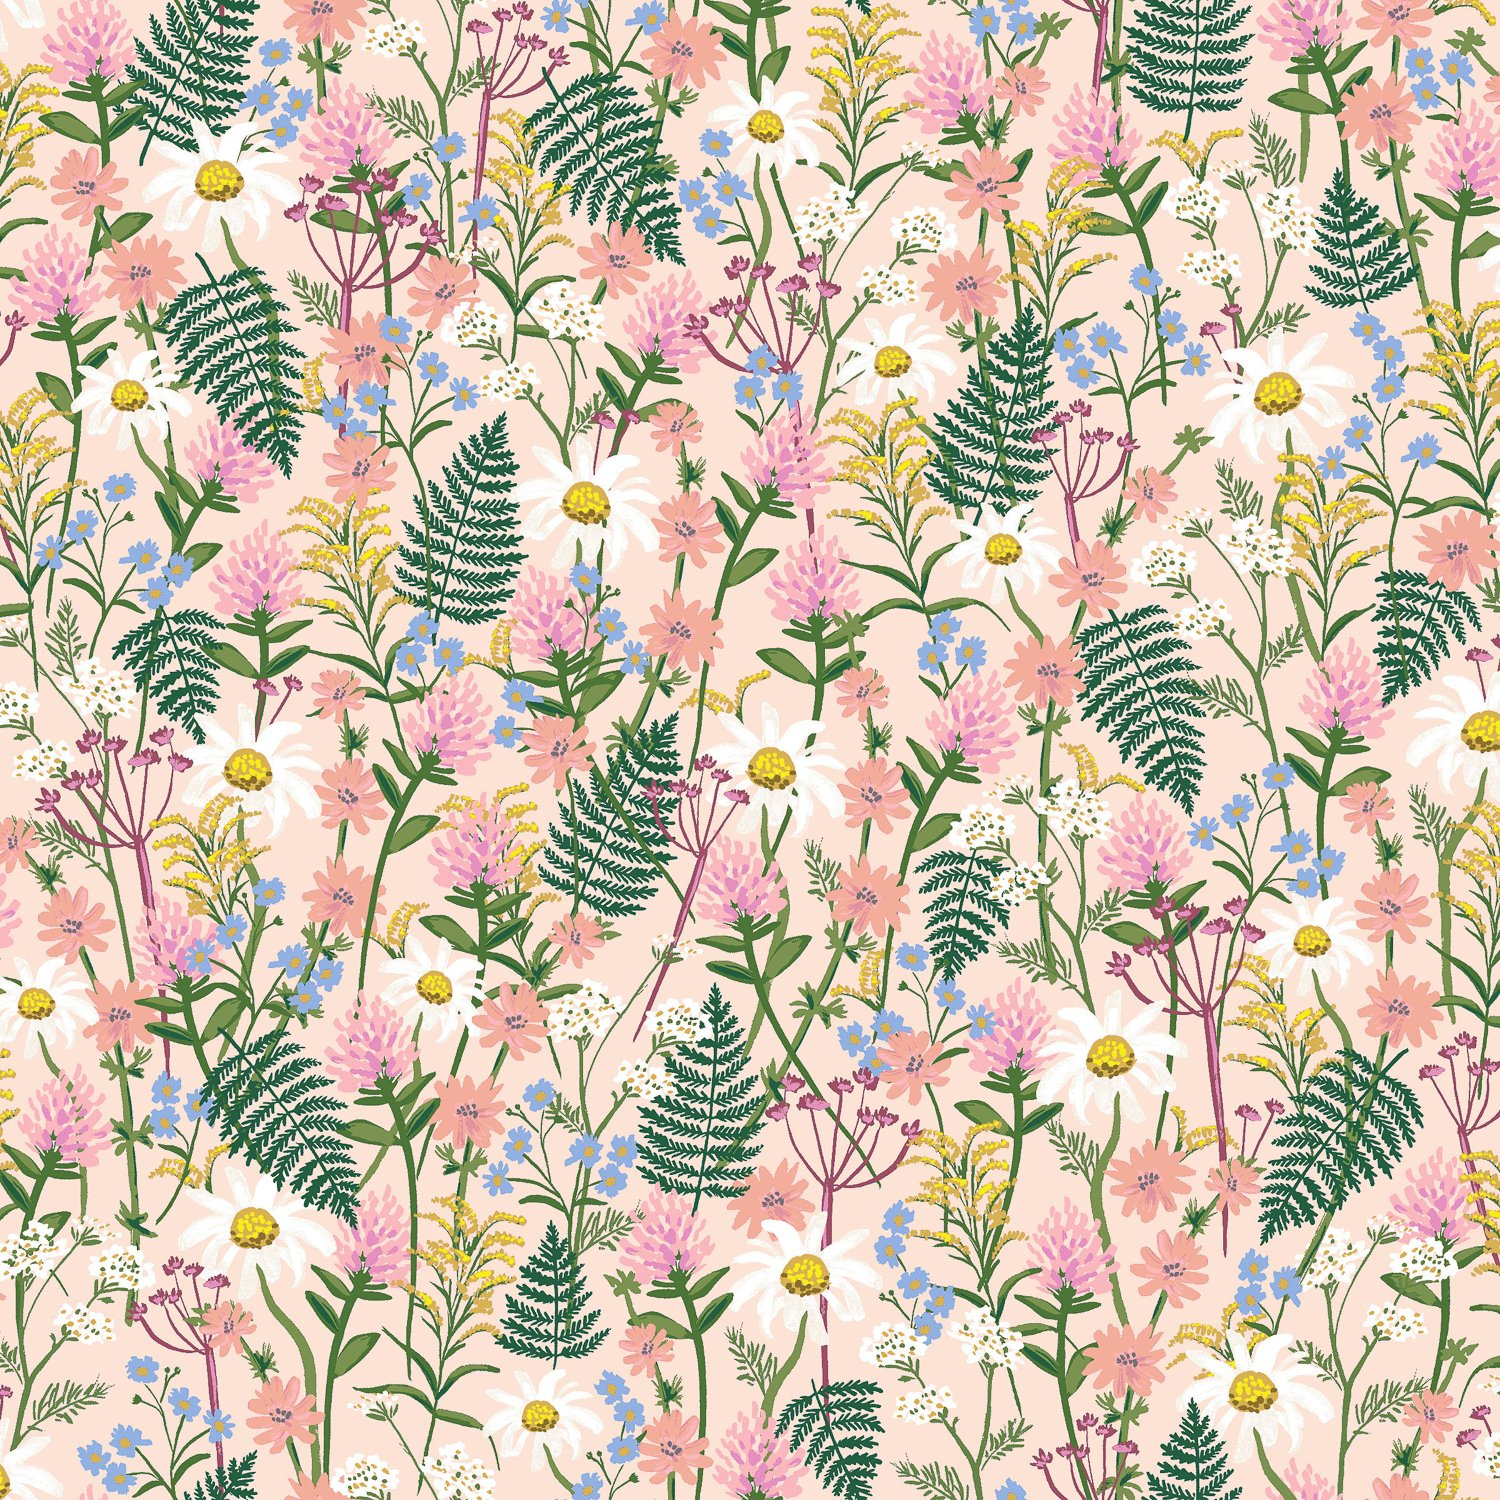 Wildflowers - Pale Rose Lawn Wildwood - Rifle Paper Co.